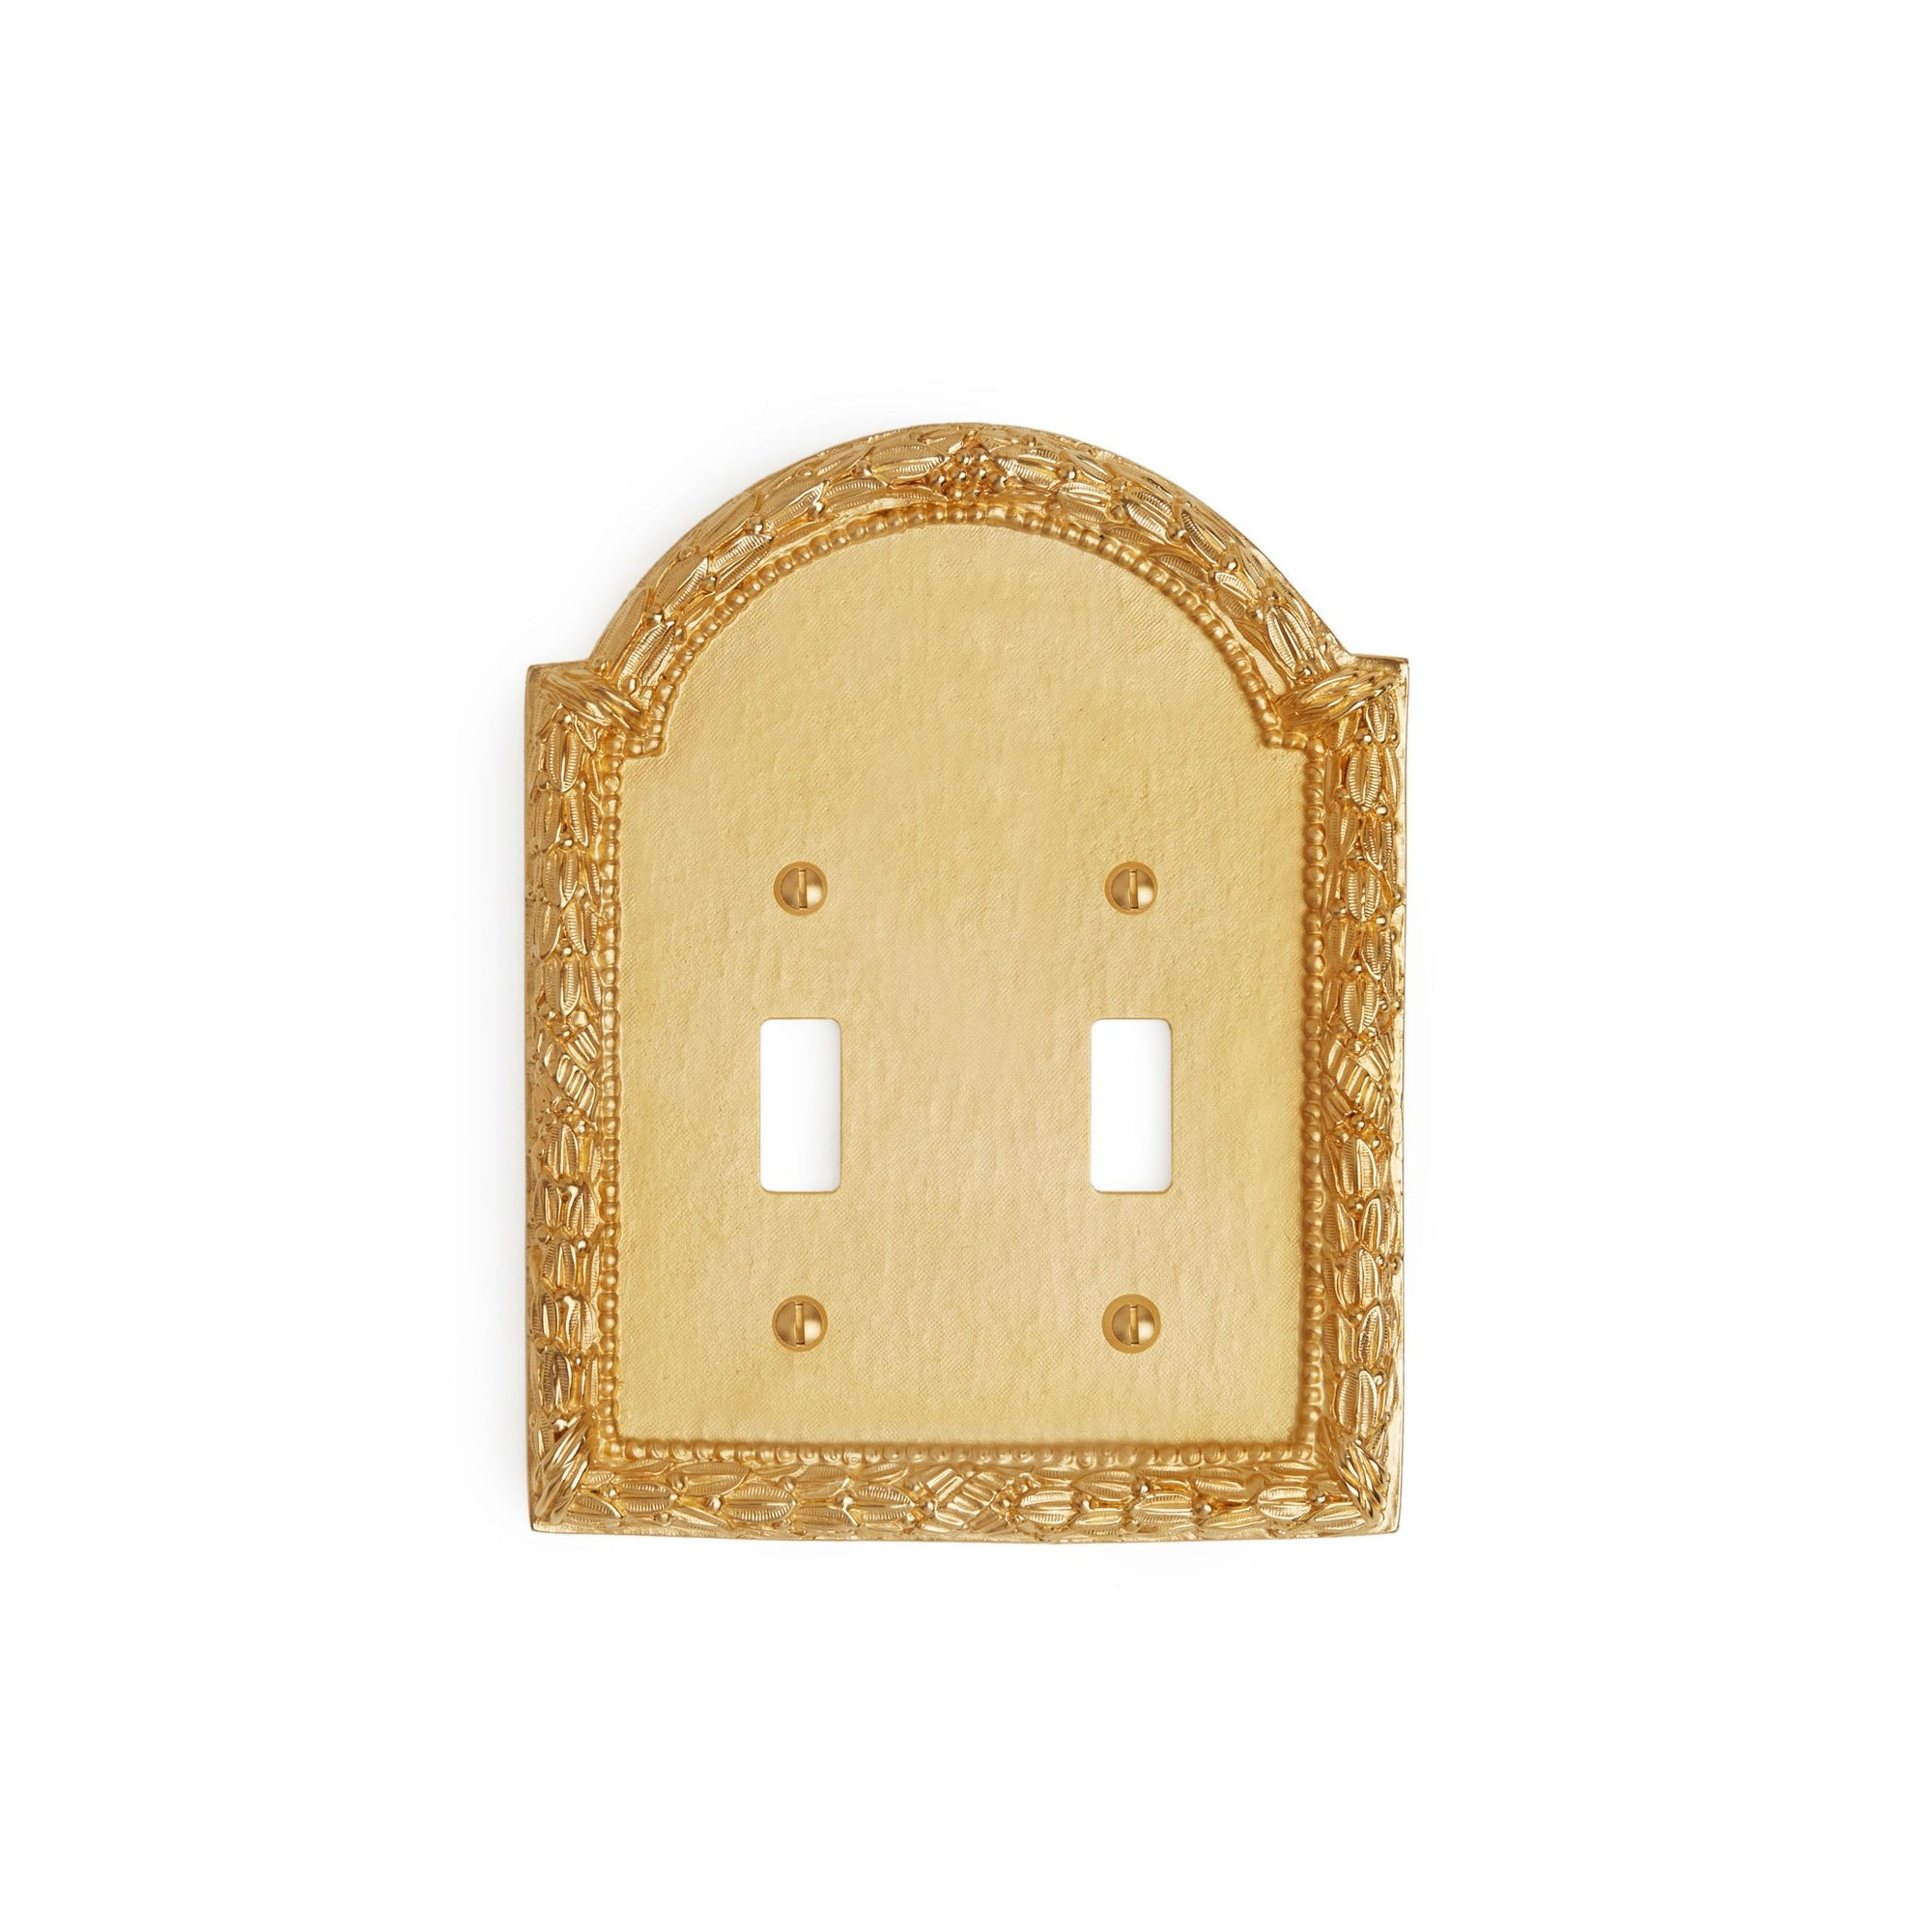 0459D-SWT-GP Sherle Wagner International Acanthus Double Switch Plate in Gold Plate metal finish